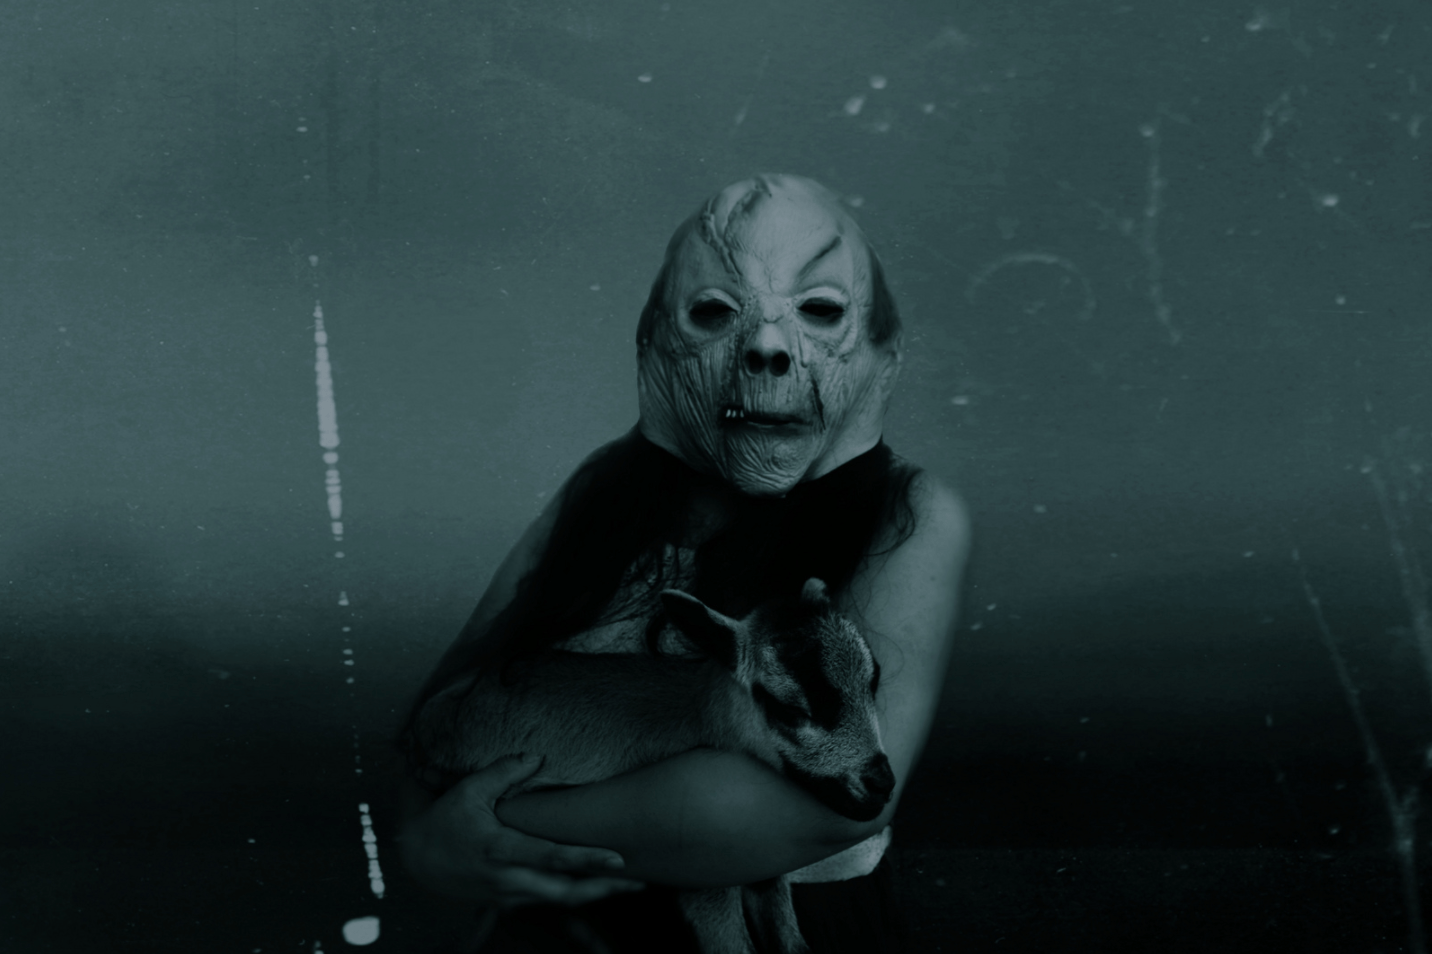 17 True Scary Stories That Will Ruin Your Night